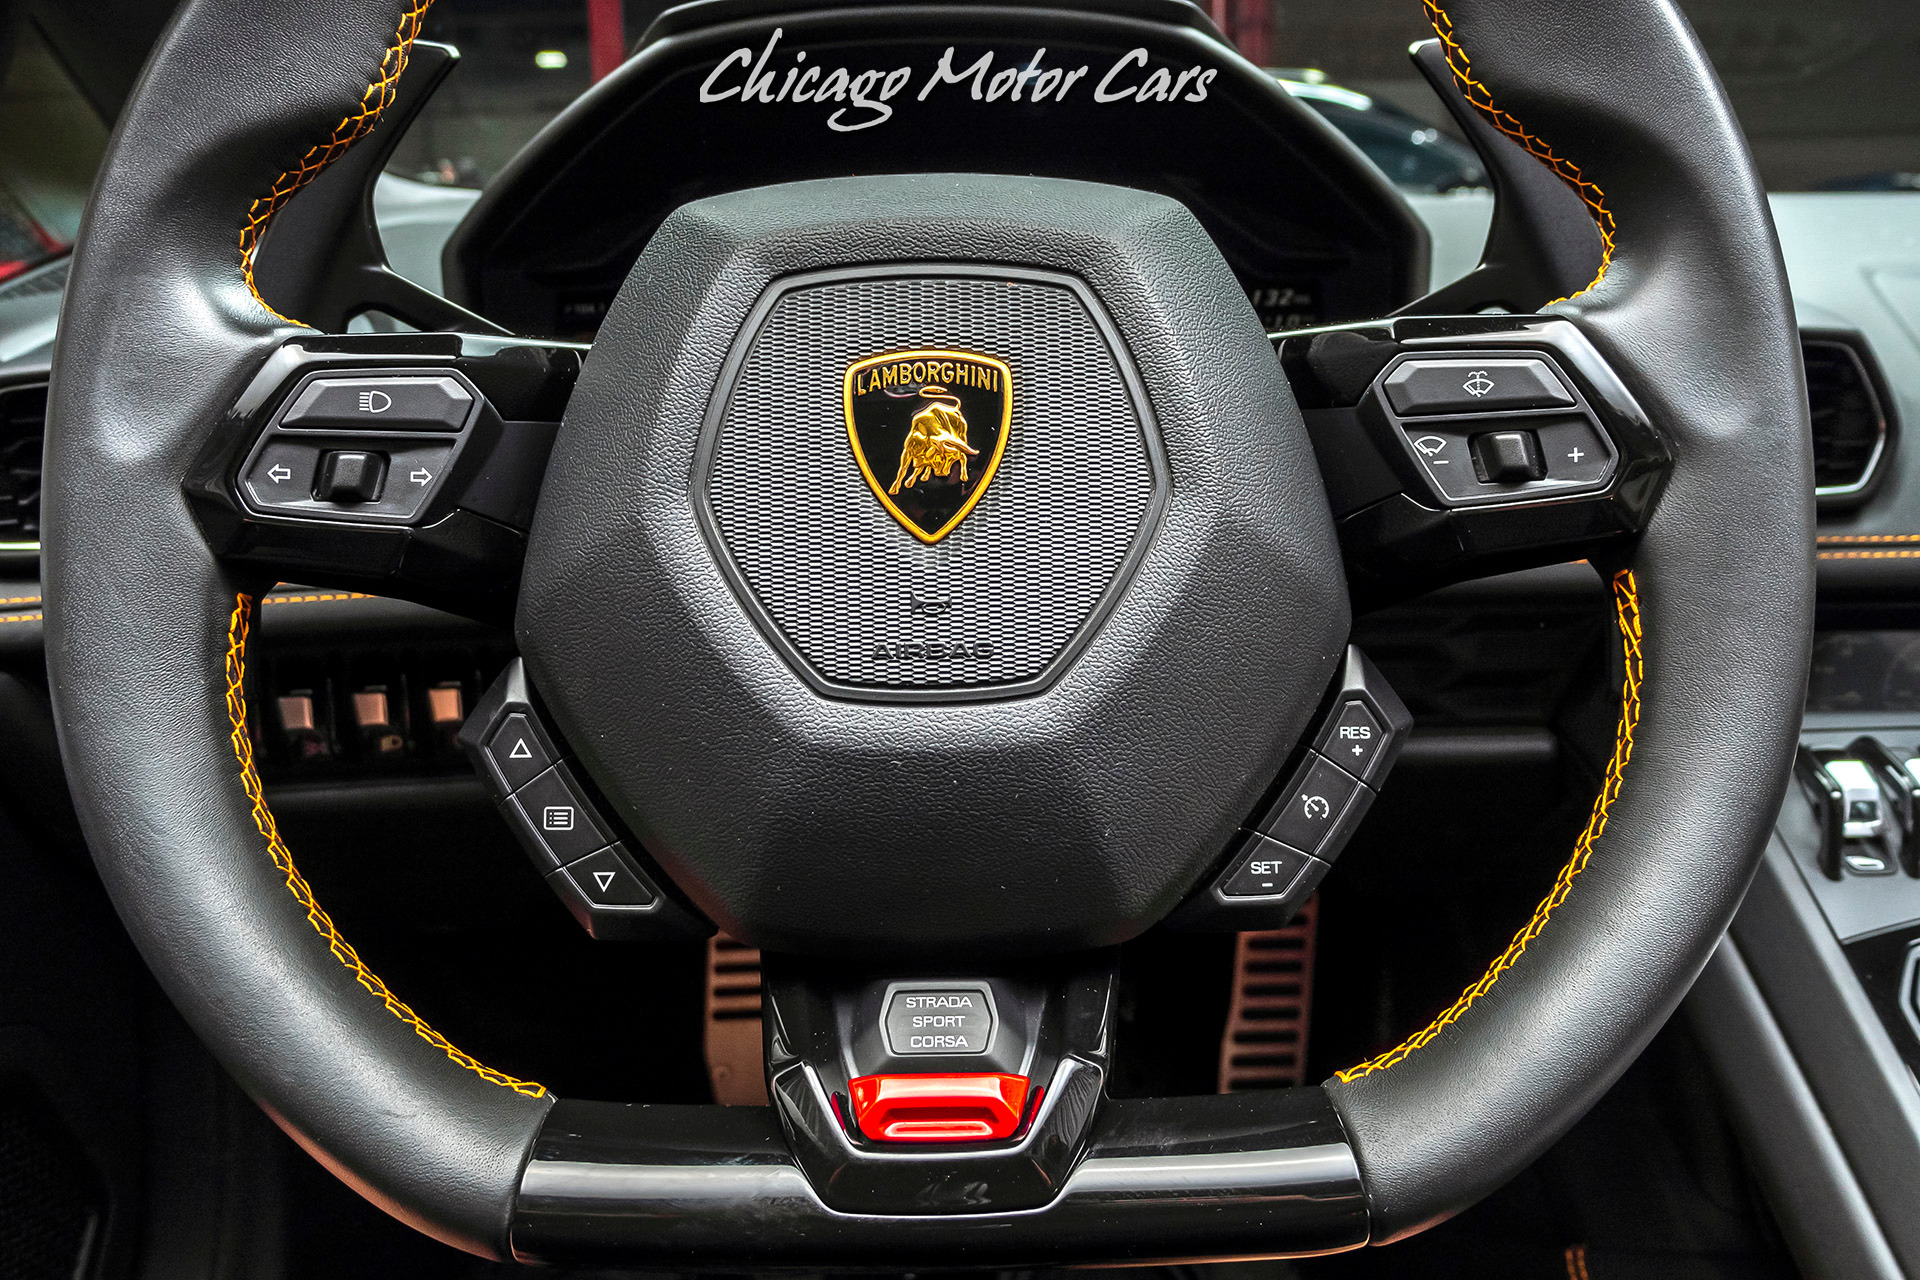 Used 2017 Lamborghini Huracan Lp 610 4 Spyder 297k Msrp Ad Personam Interior For Sale Special Pricing Chicago Motor Cars Stock 17156